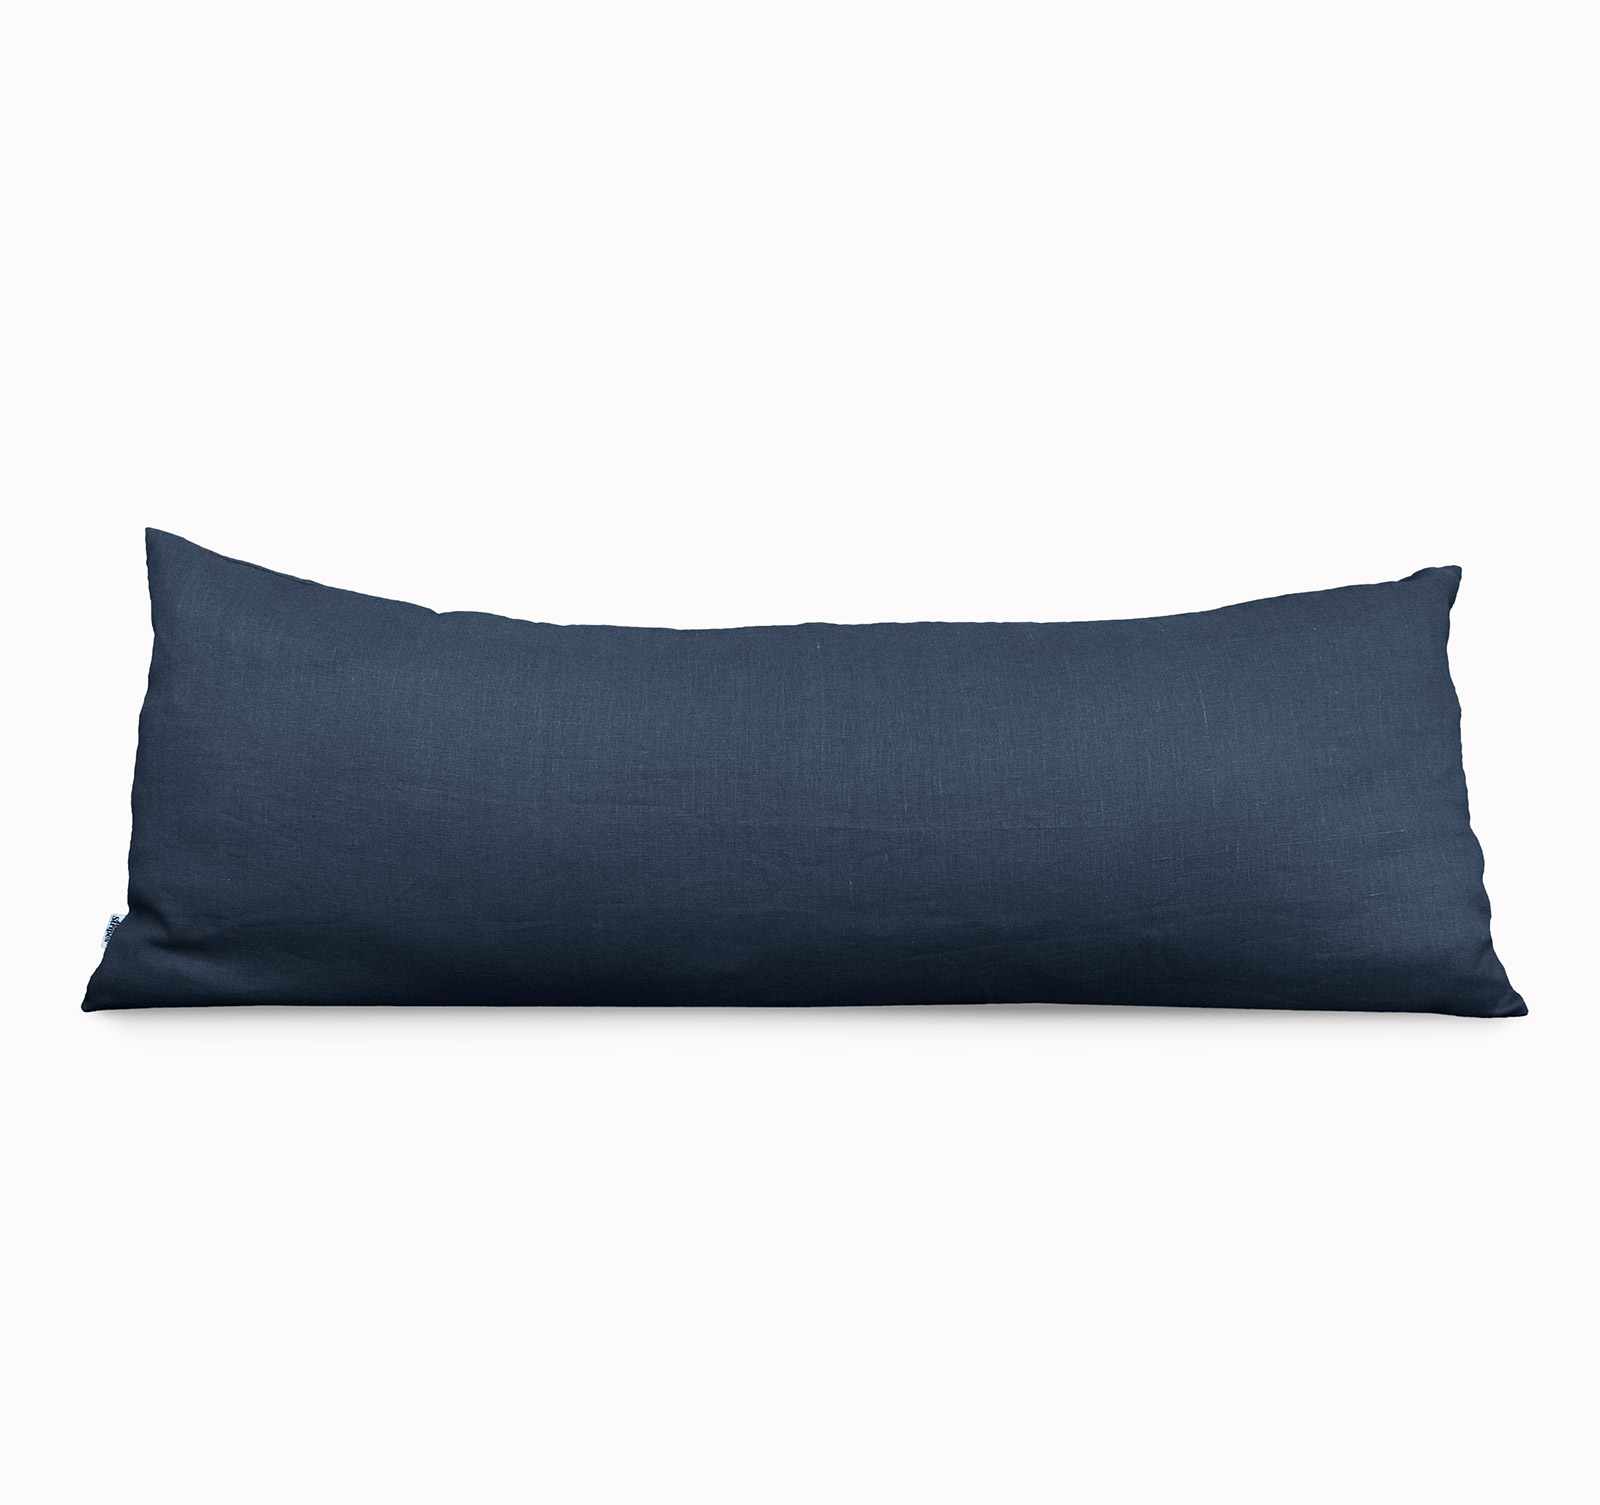 Navy Body Pillow cover Linen and Stripes